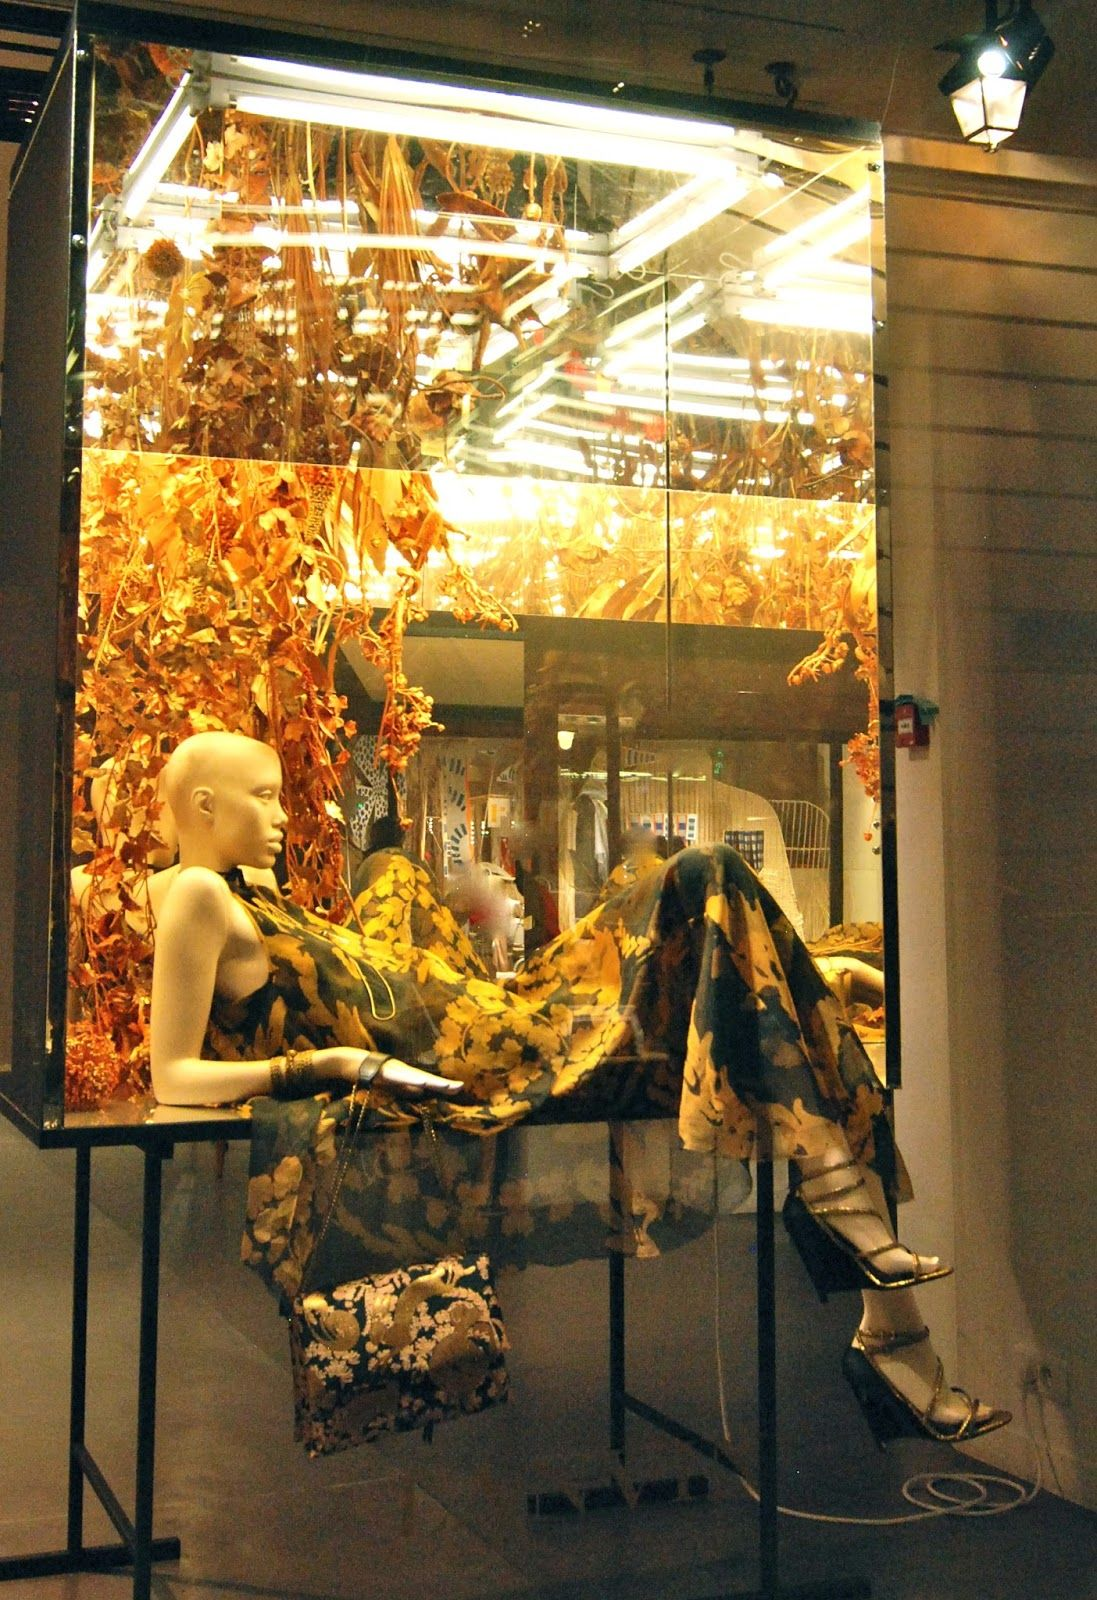 """LANVIN,Paris,France, """"Upright display cabinets are ideal for preserving and displaying any types of specimen"""", photo by MesVitrines, pinned by Ton van der Veer"""